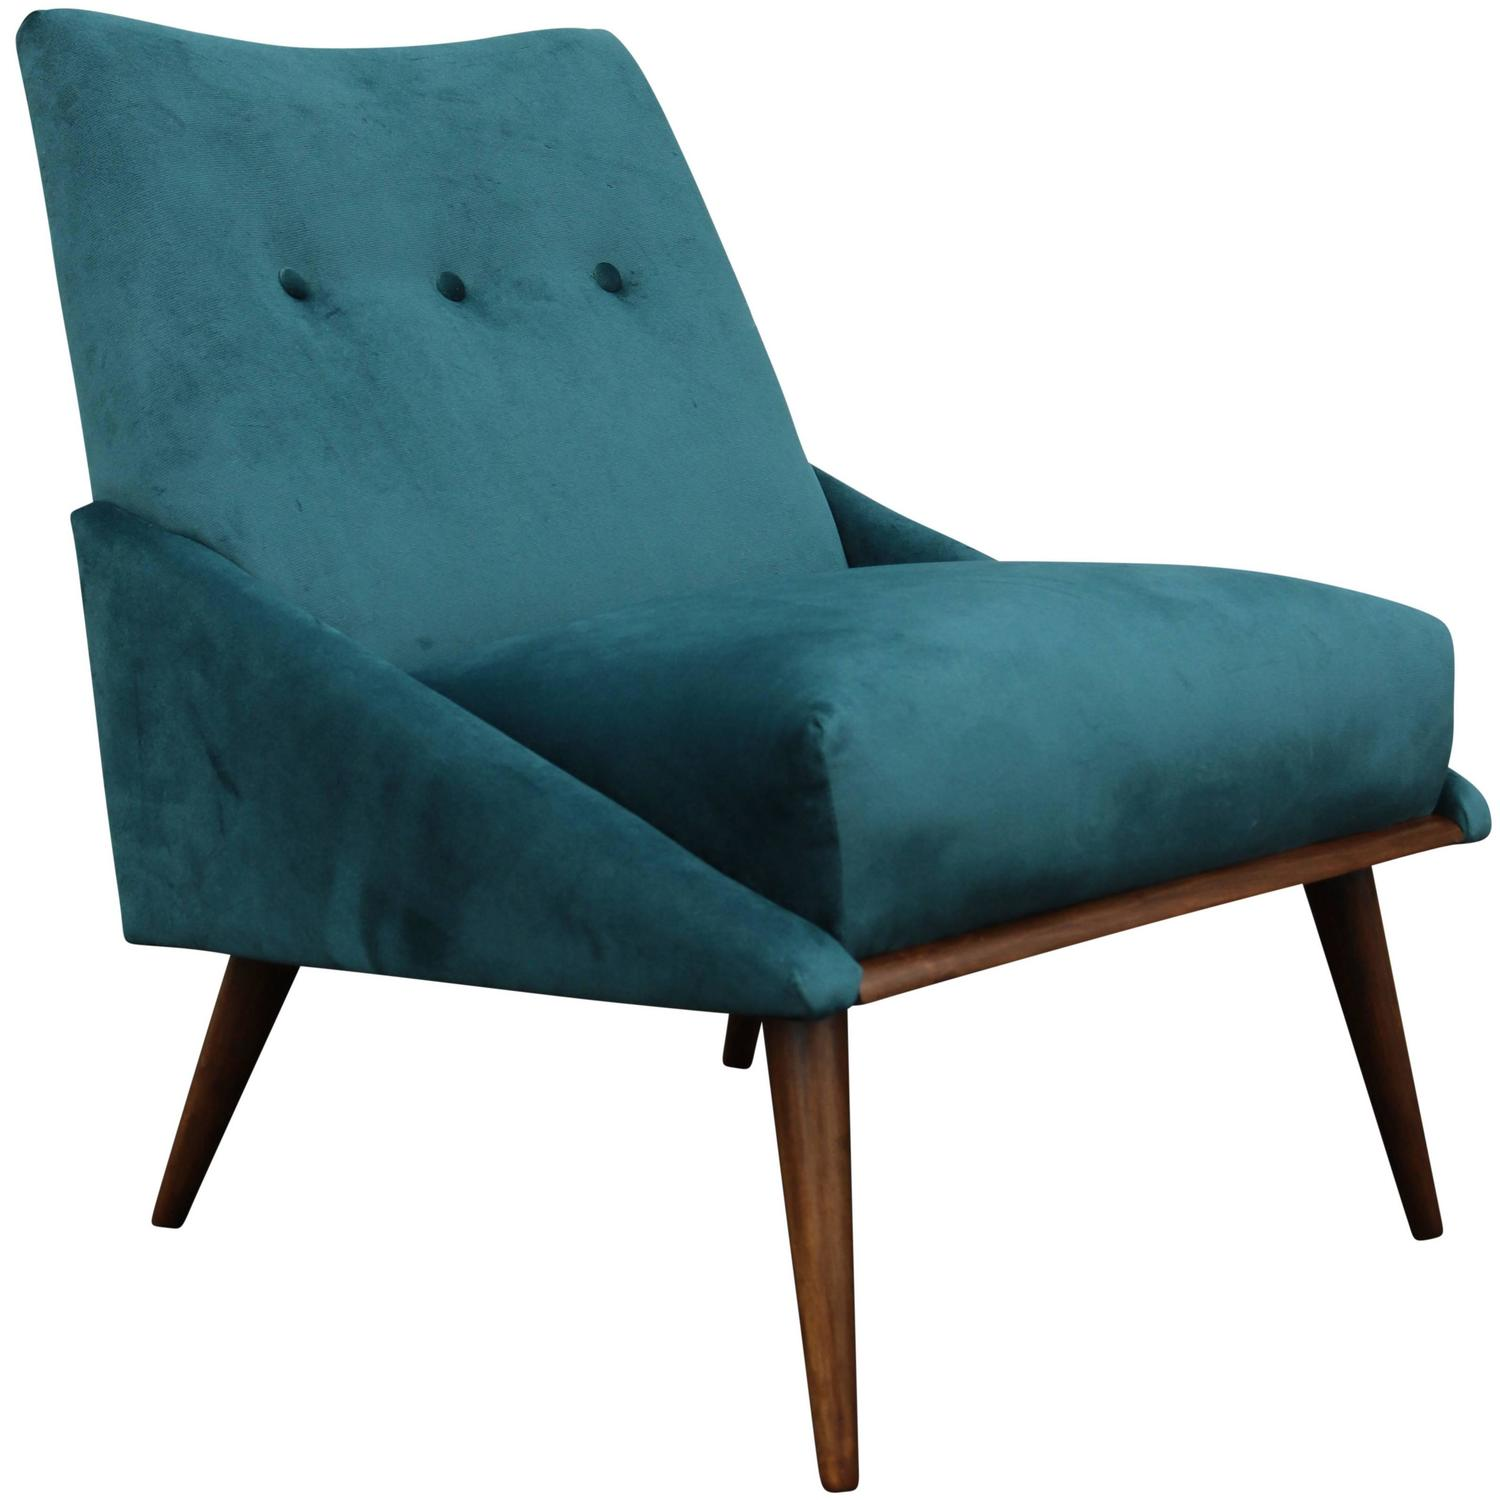 modern chairs chair exercise groups peacock velvet mid century at 1stdibs